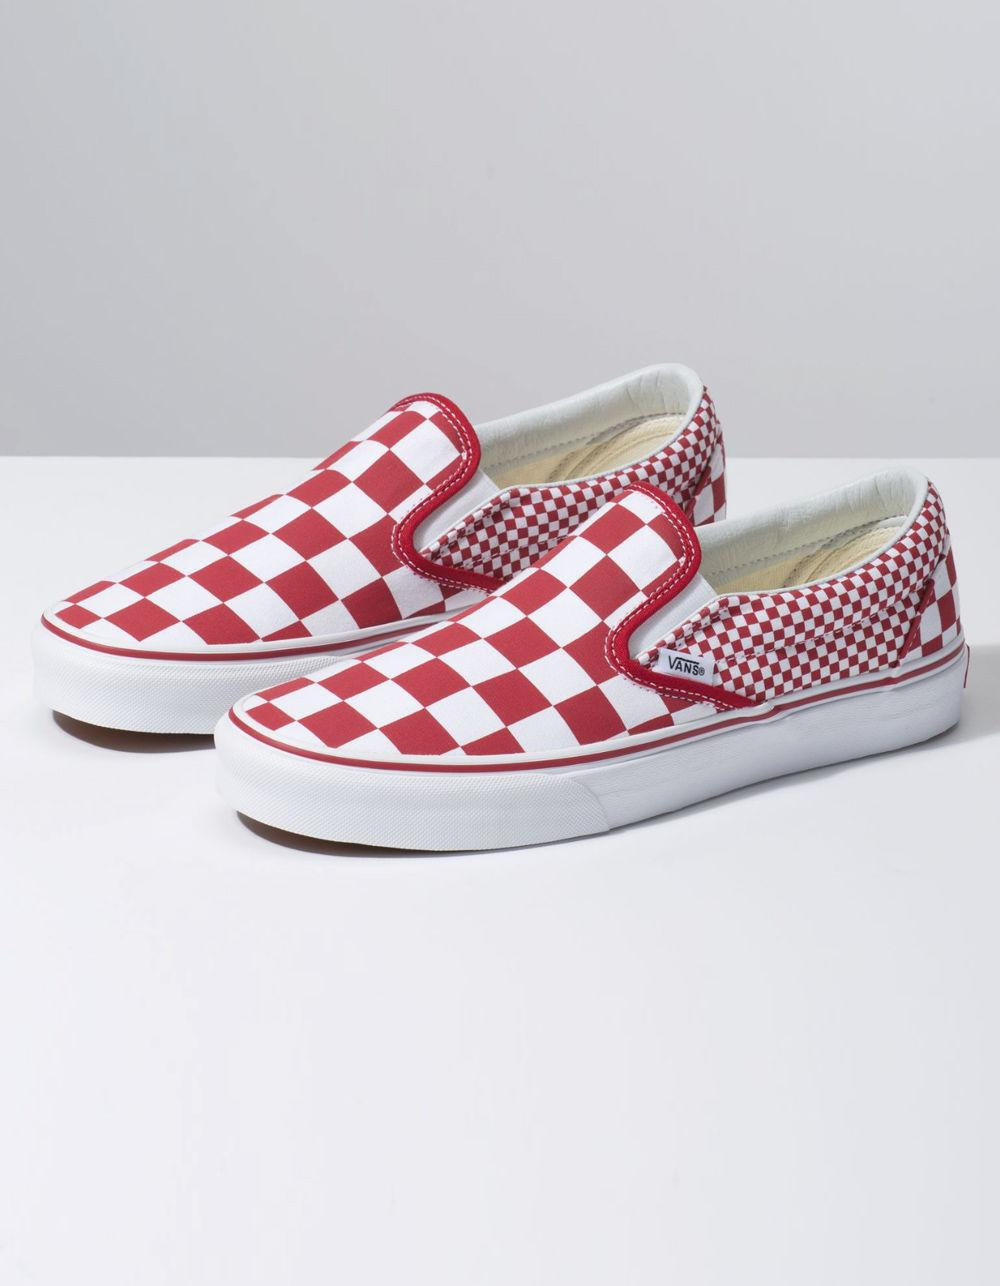 bd62d53fc70116 Lyst - Vans Mix Checker Classic Slip-on Chili Pepper   True White Shoes in  White